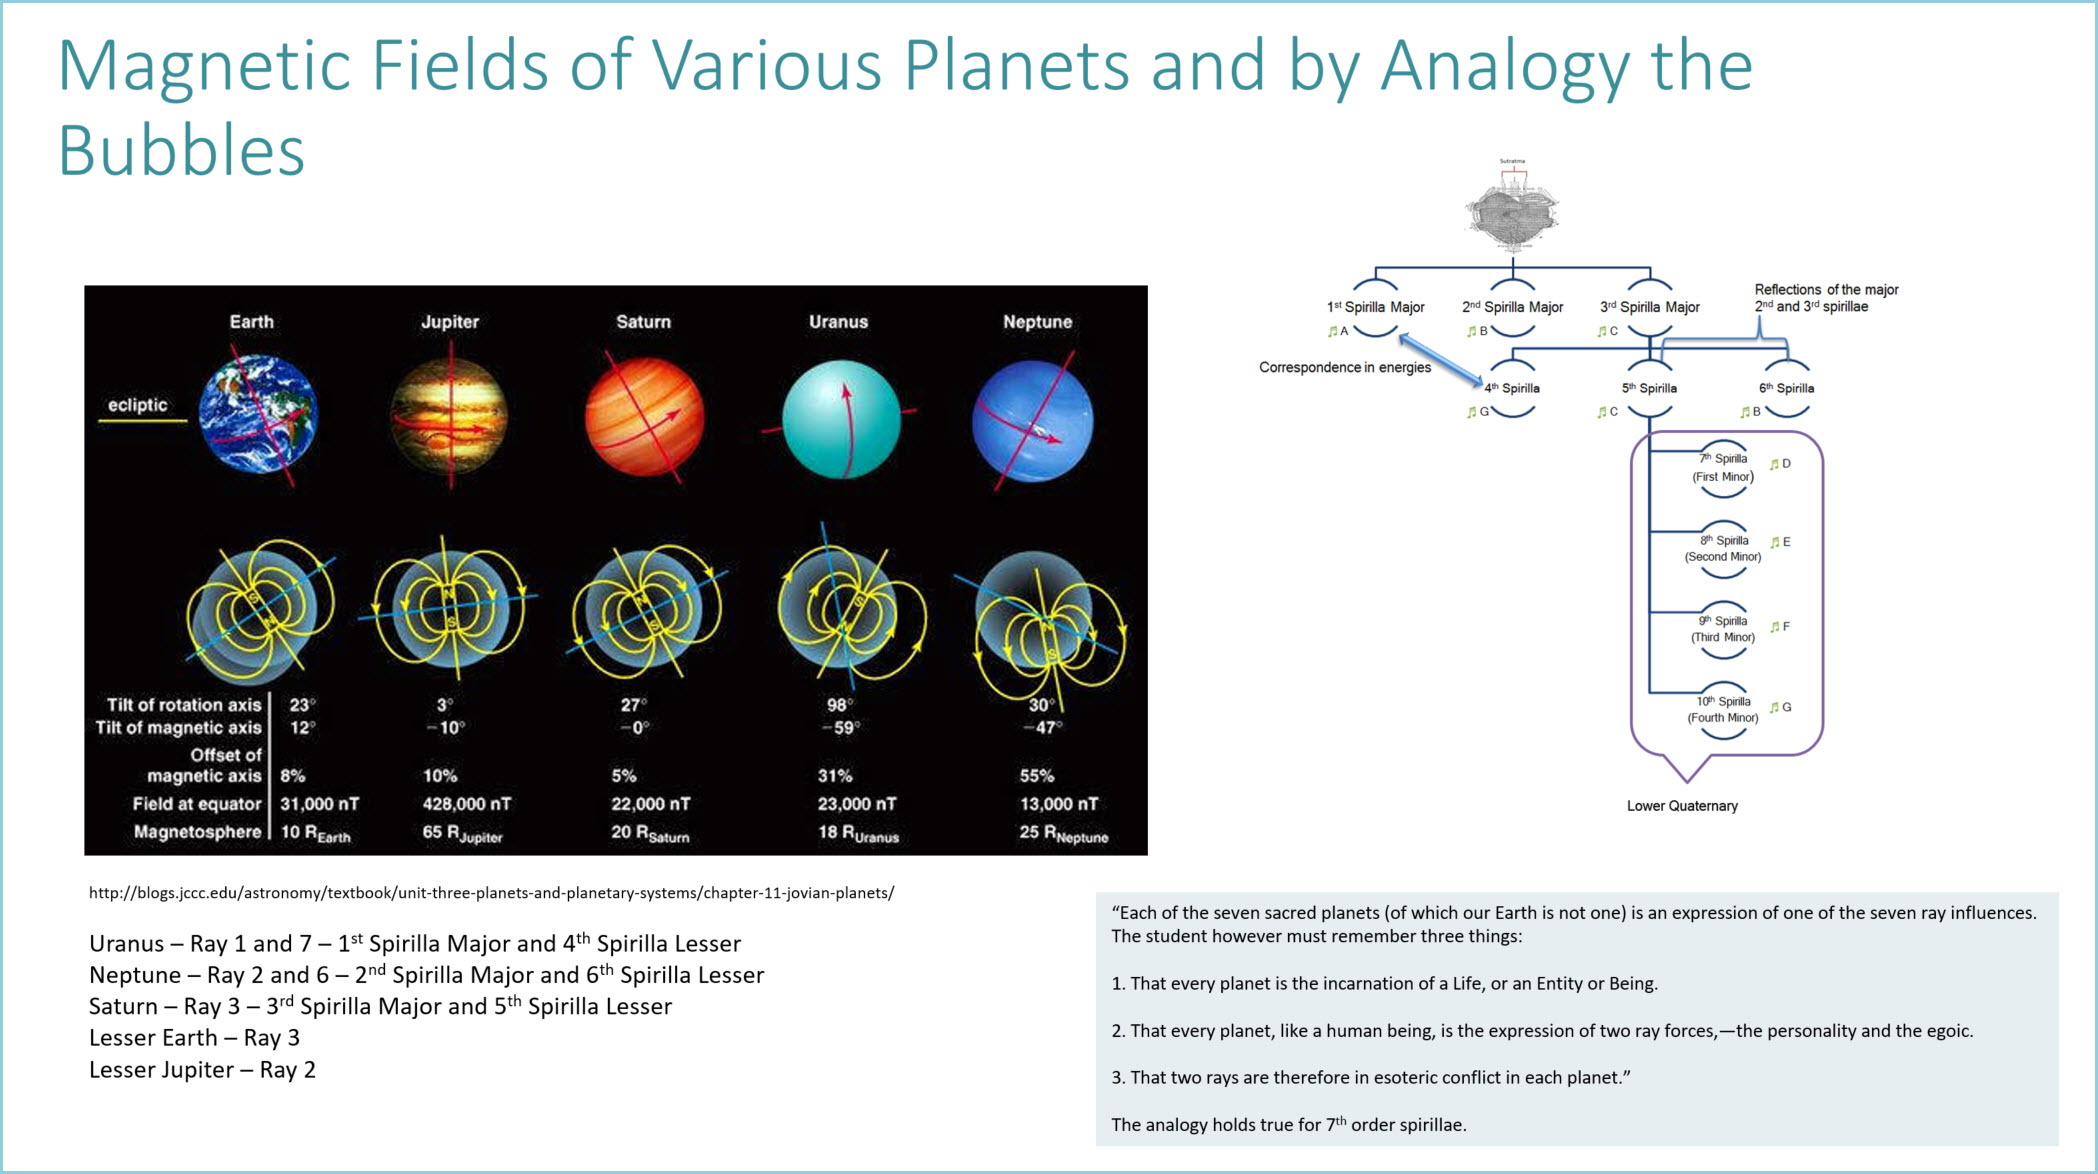 Magnetic Fields Various Planets and by Analogy the Bubbles